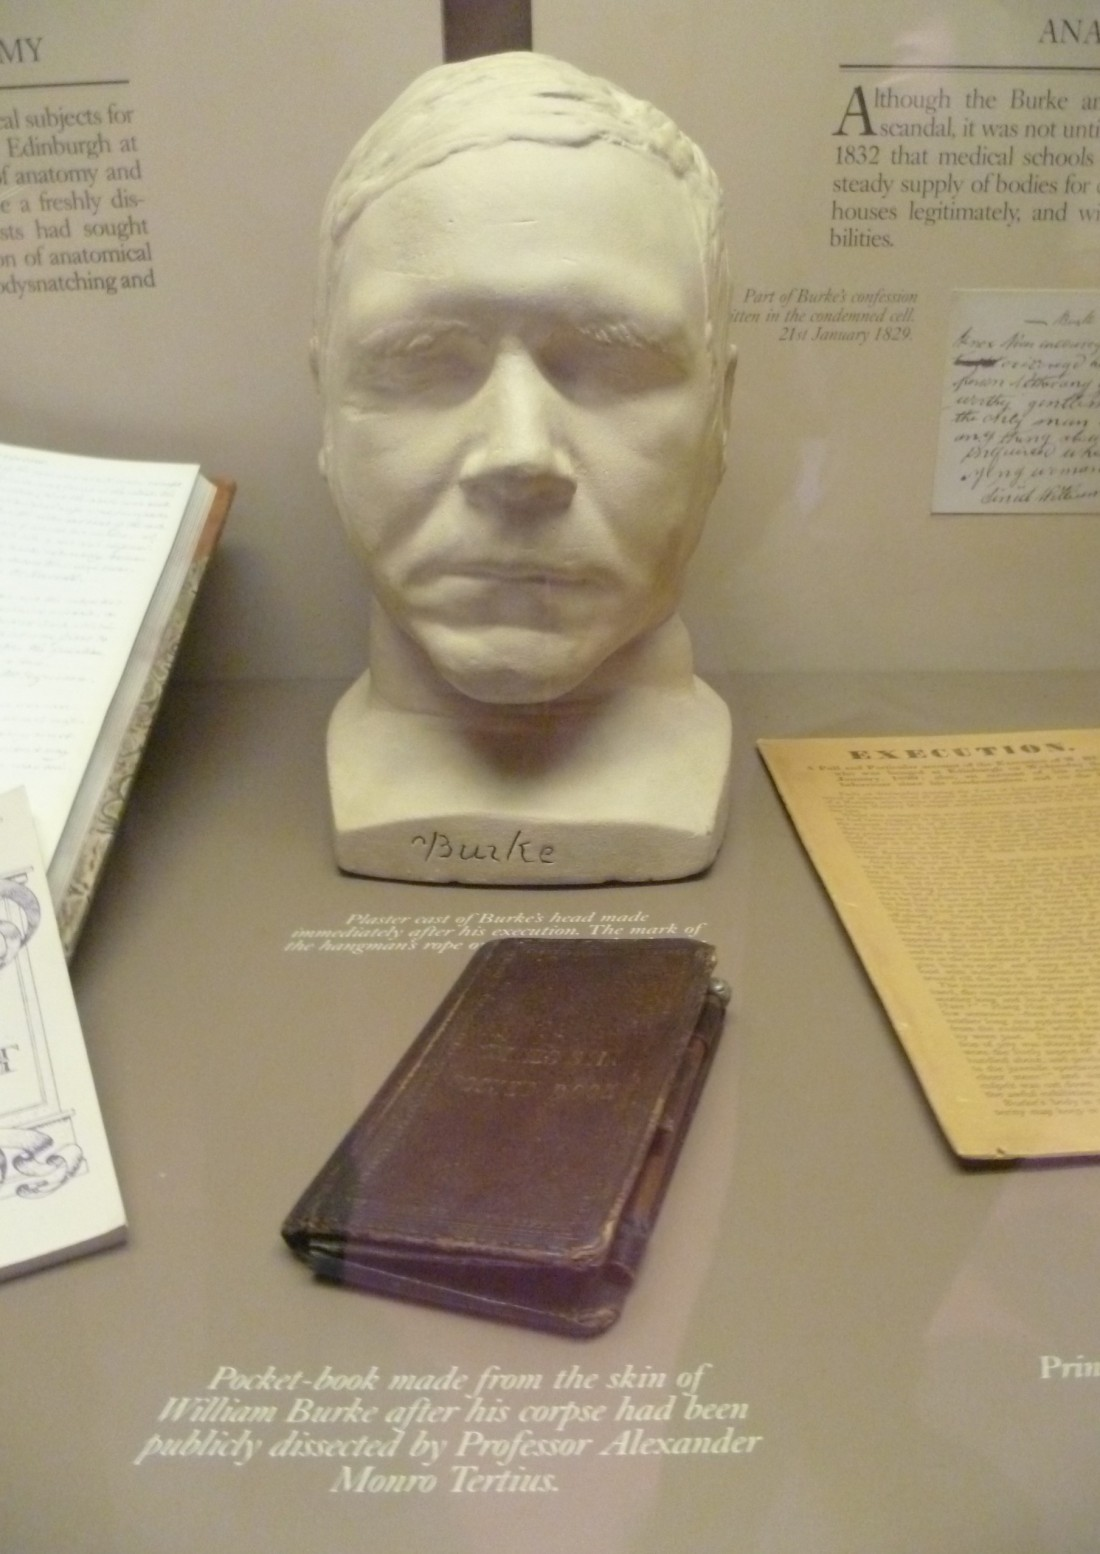 william_burkes_death_mask_and_pocket_book_surgeons_hall_museum_edinburgh